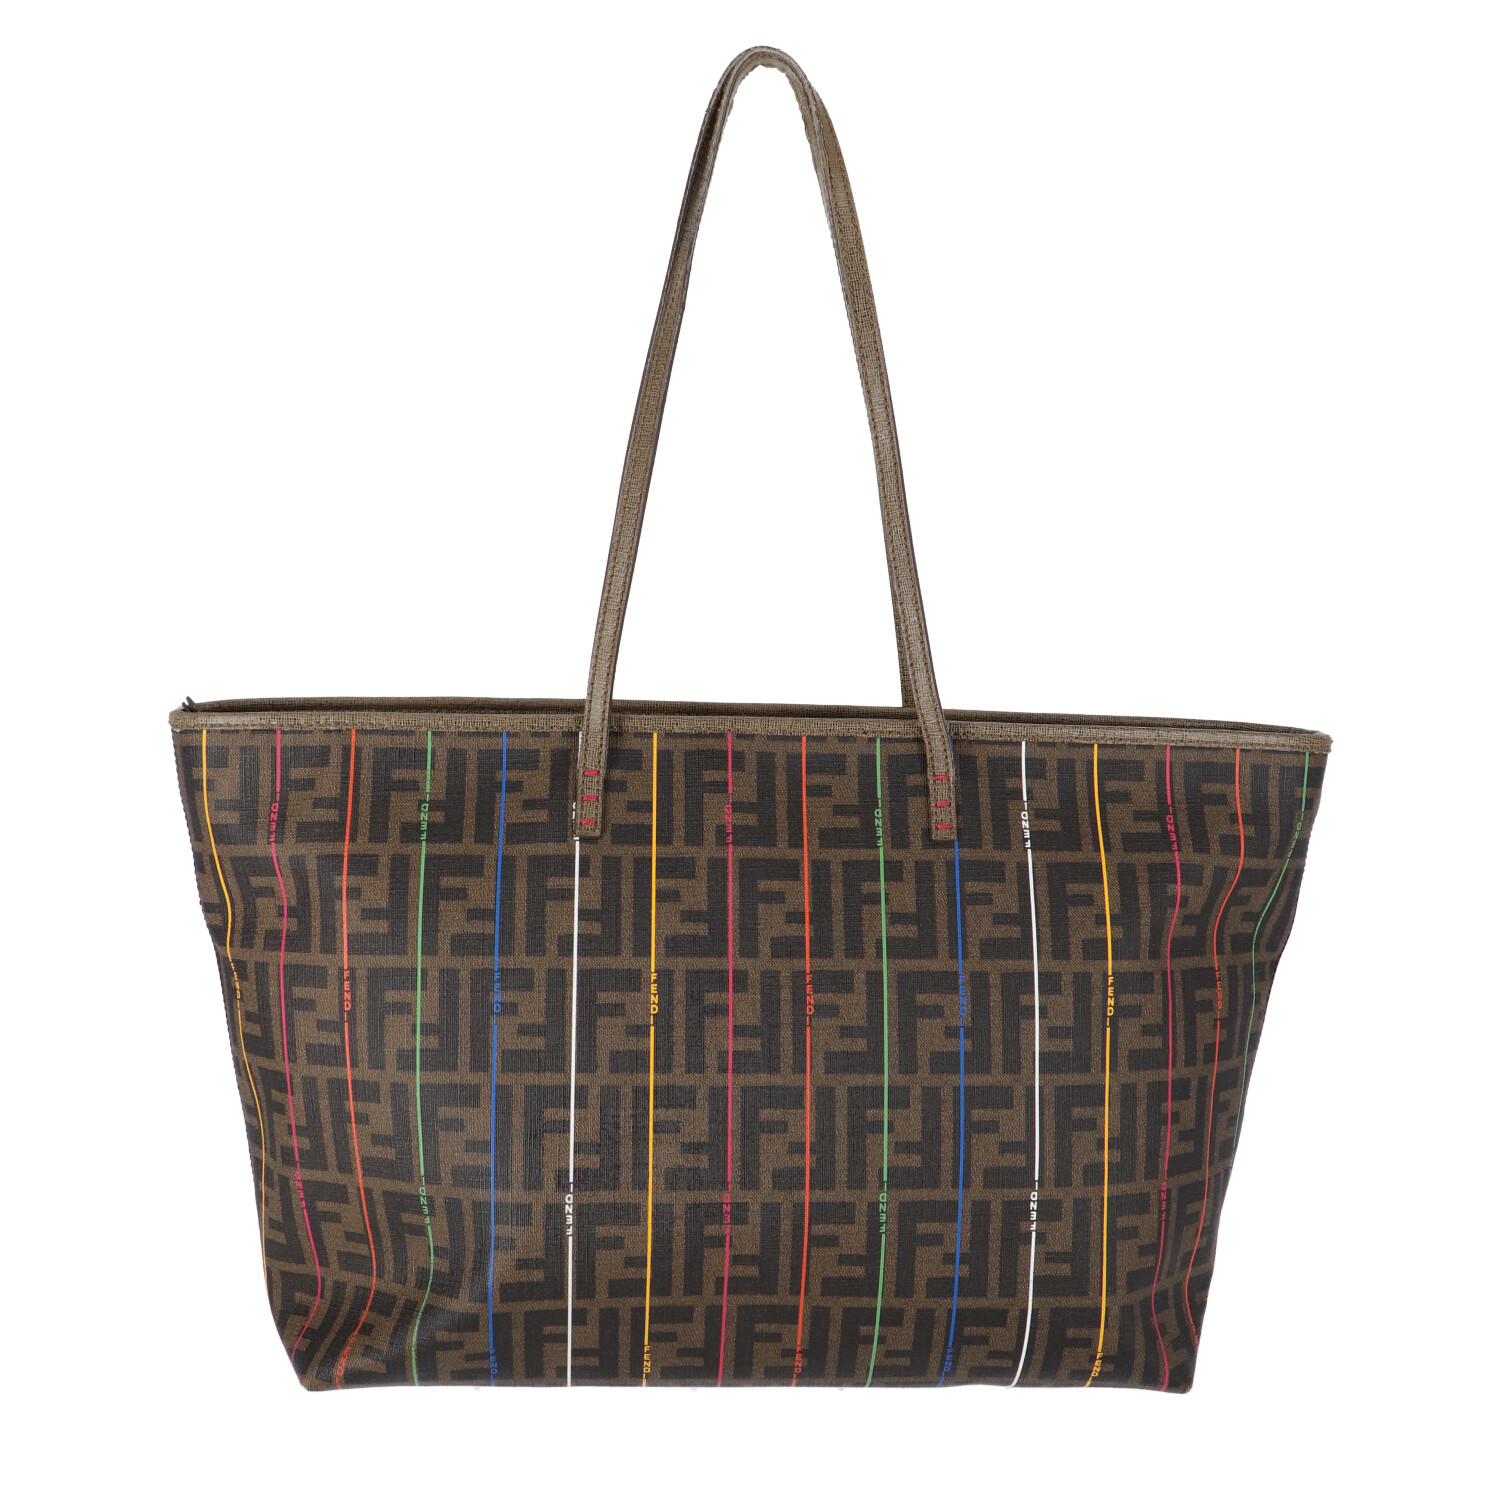 Fendi Multicolor Zucca Coated Canvas Shopper